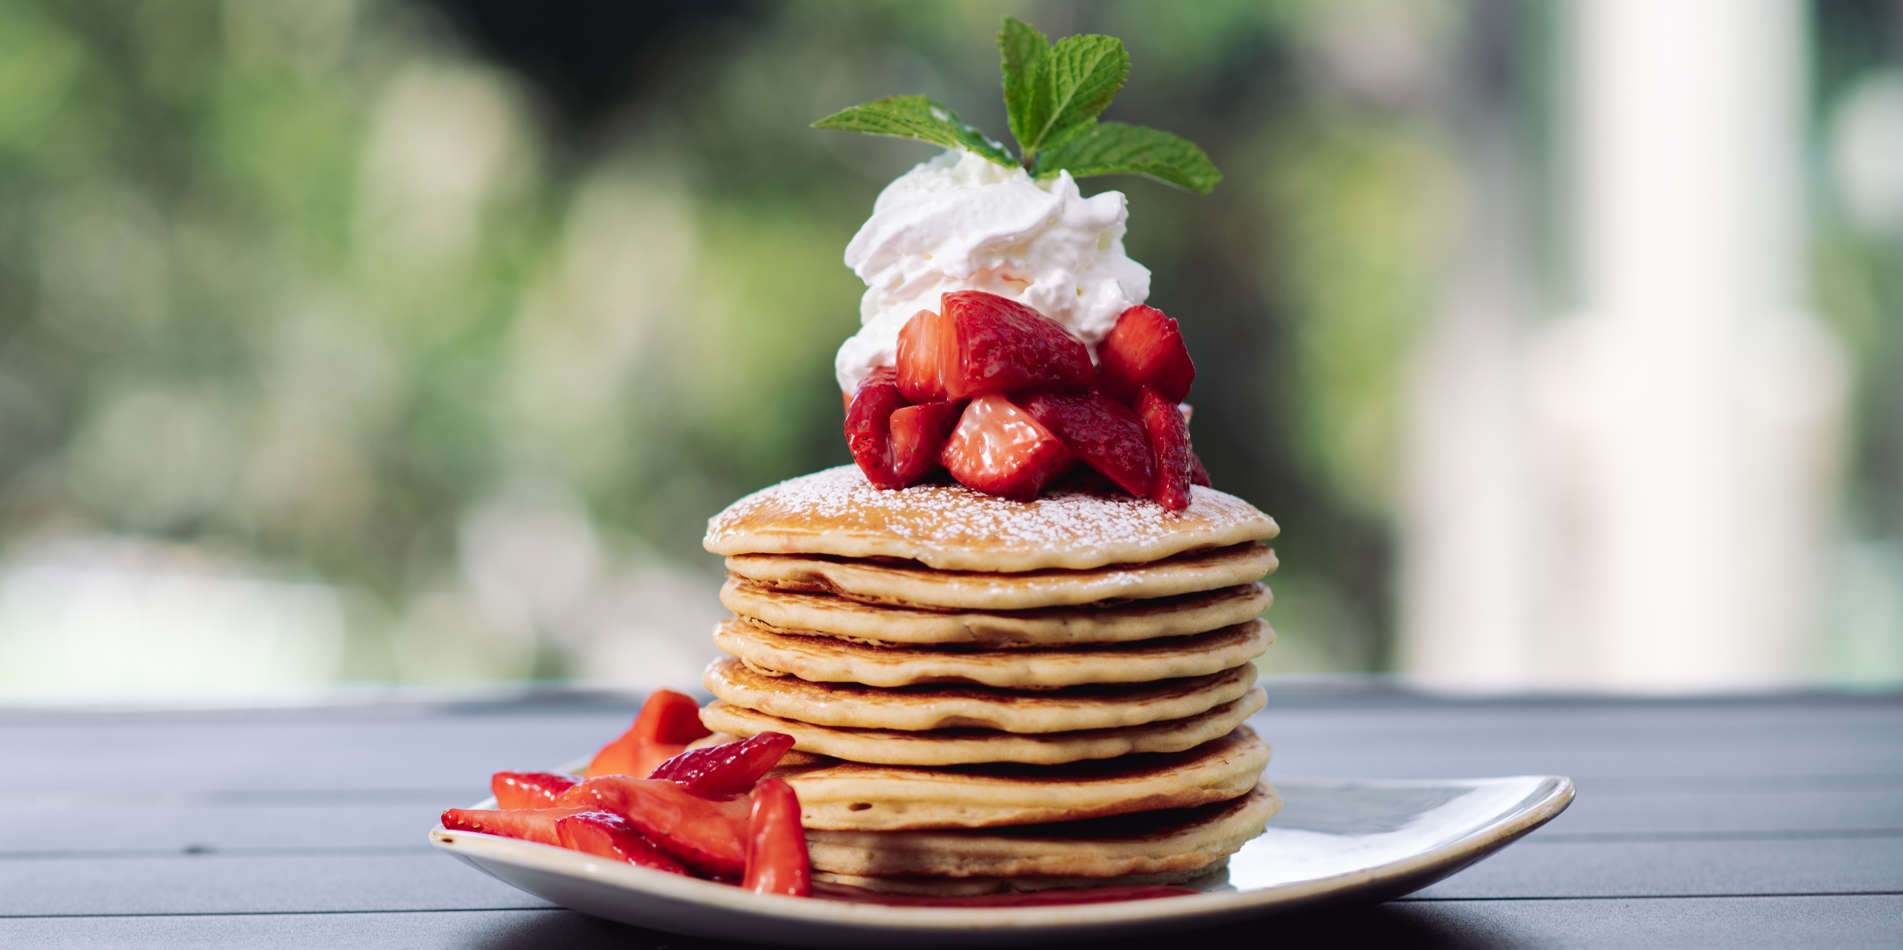 Carmel Valley Ranch_Food_Breakfast_Pancakes_42_CR